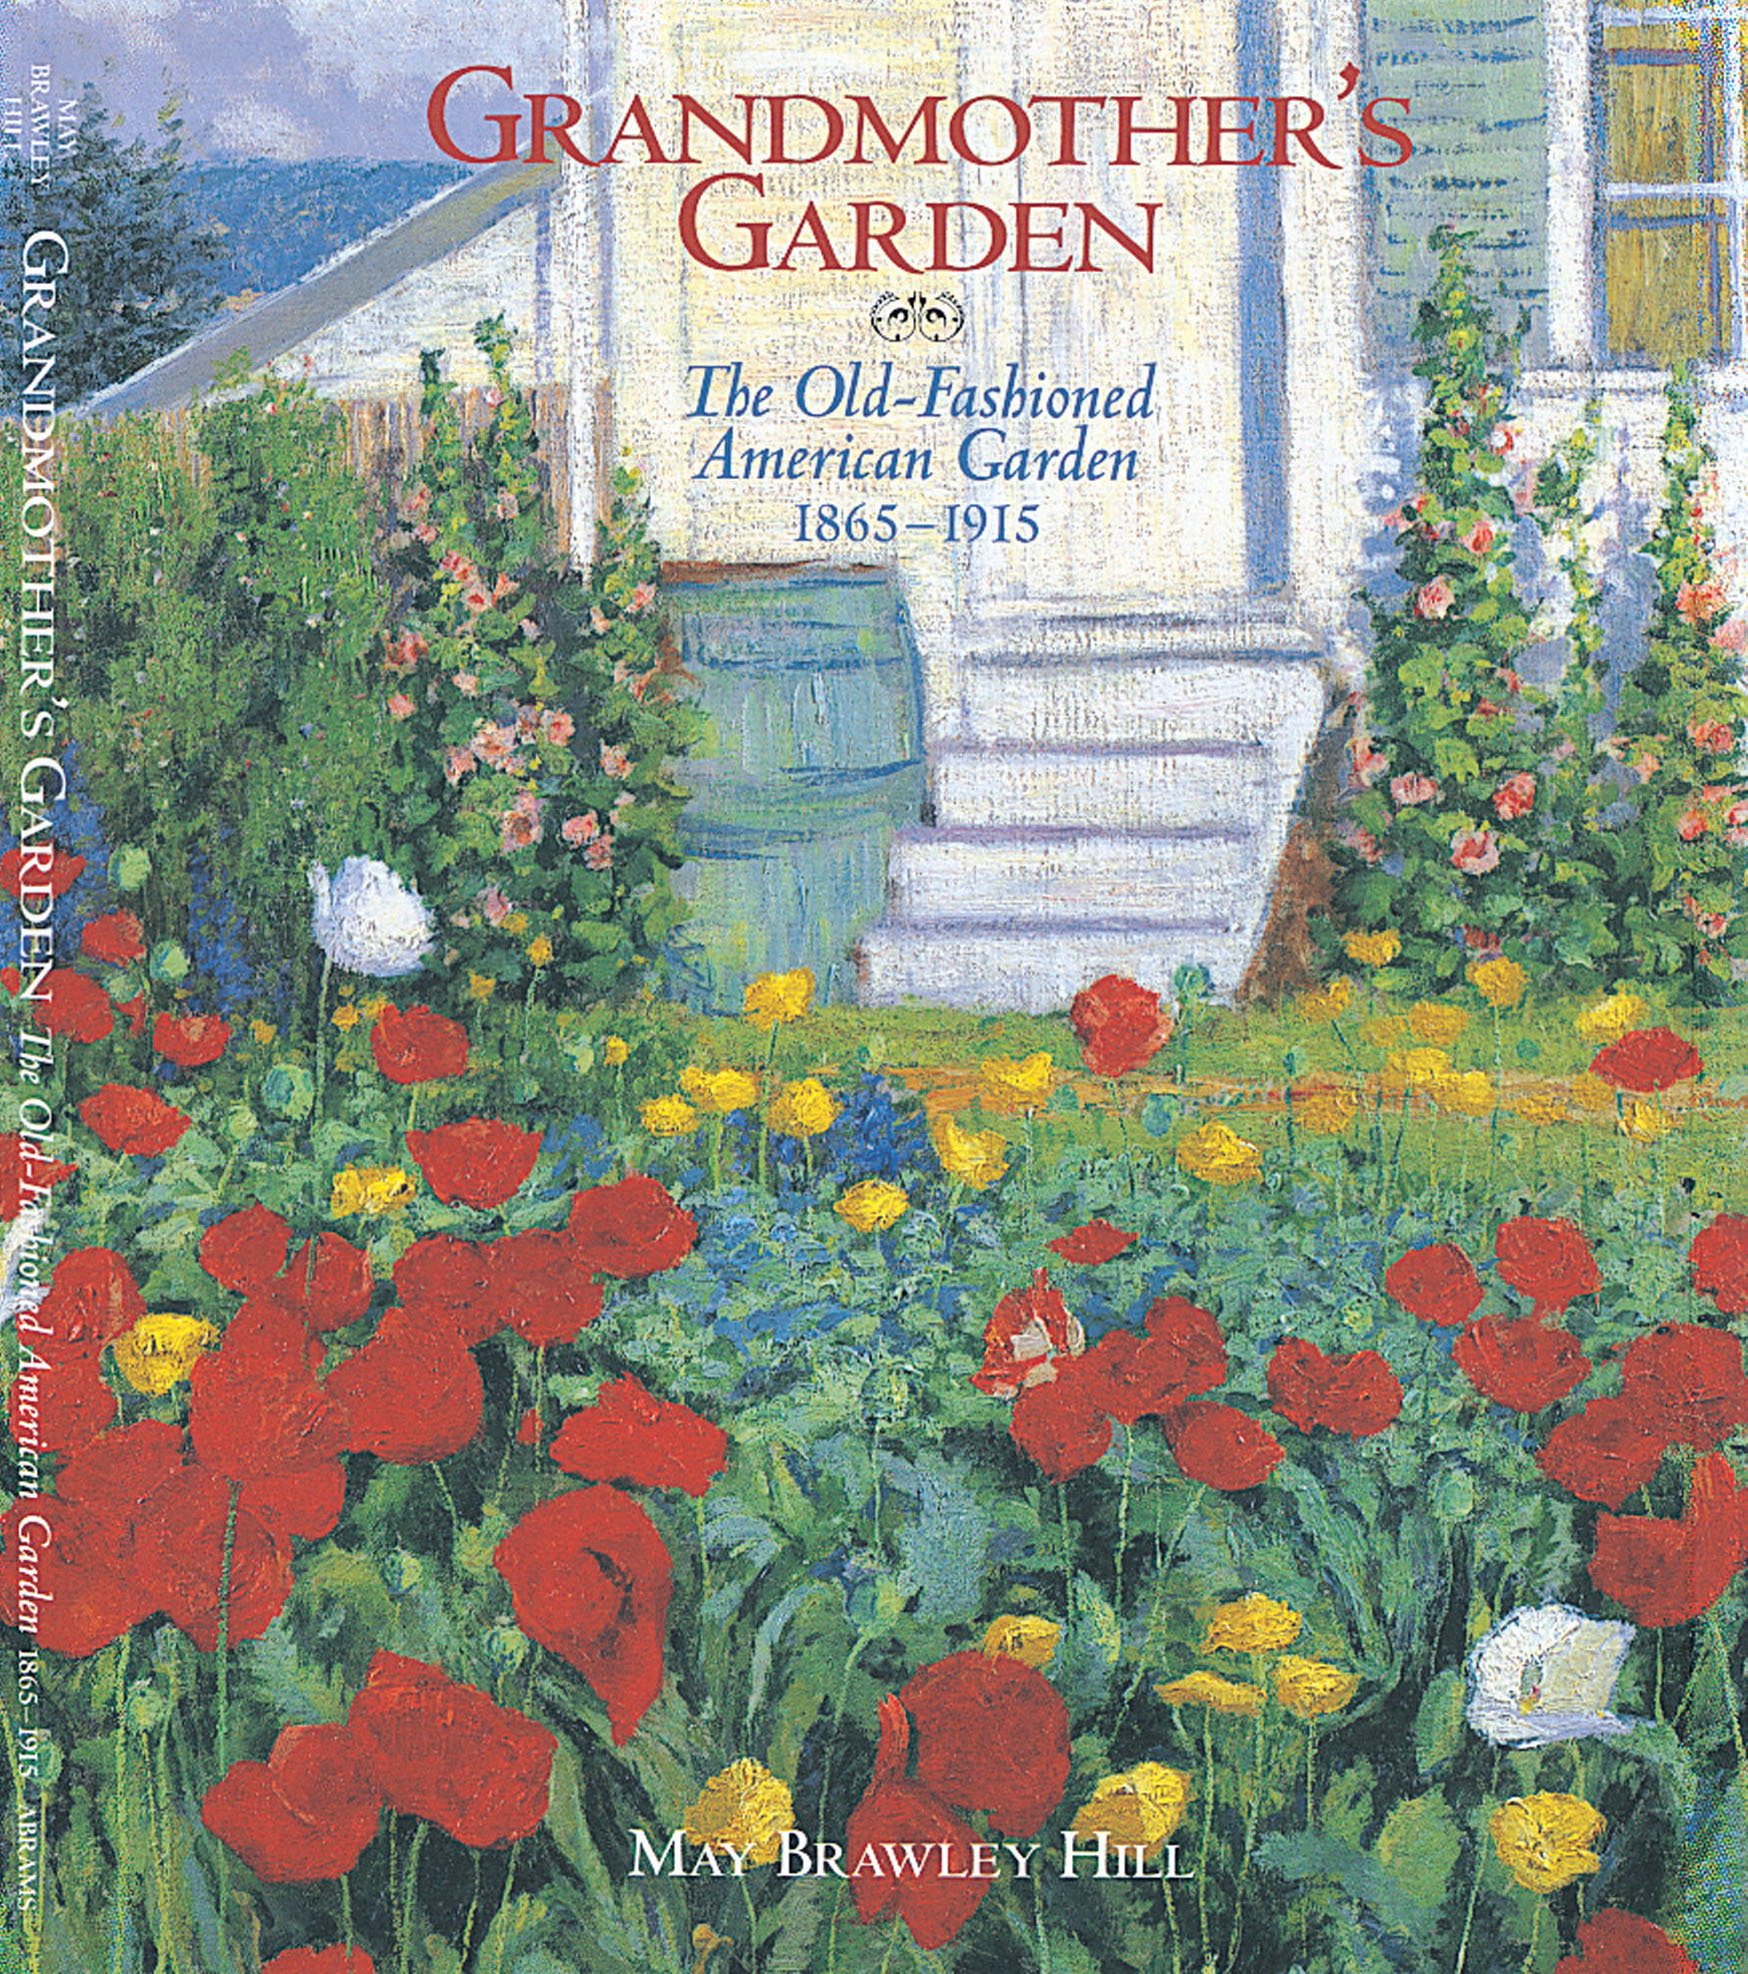 Grandmother's Garden, gardening book